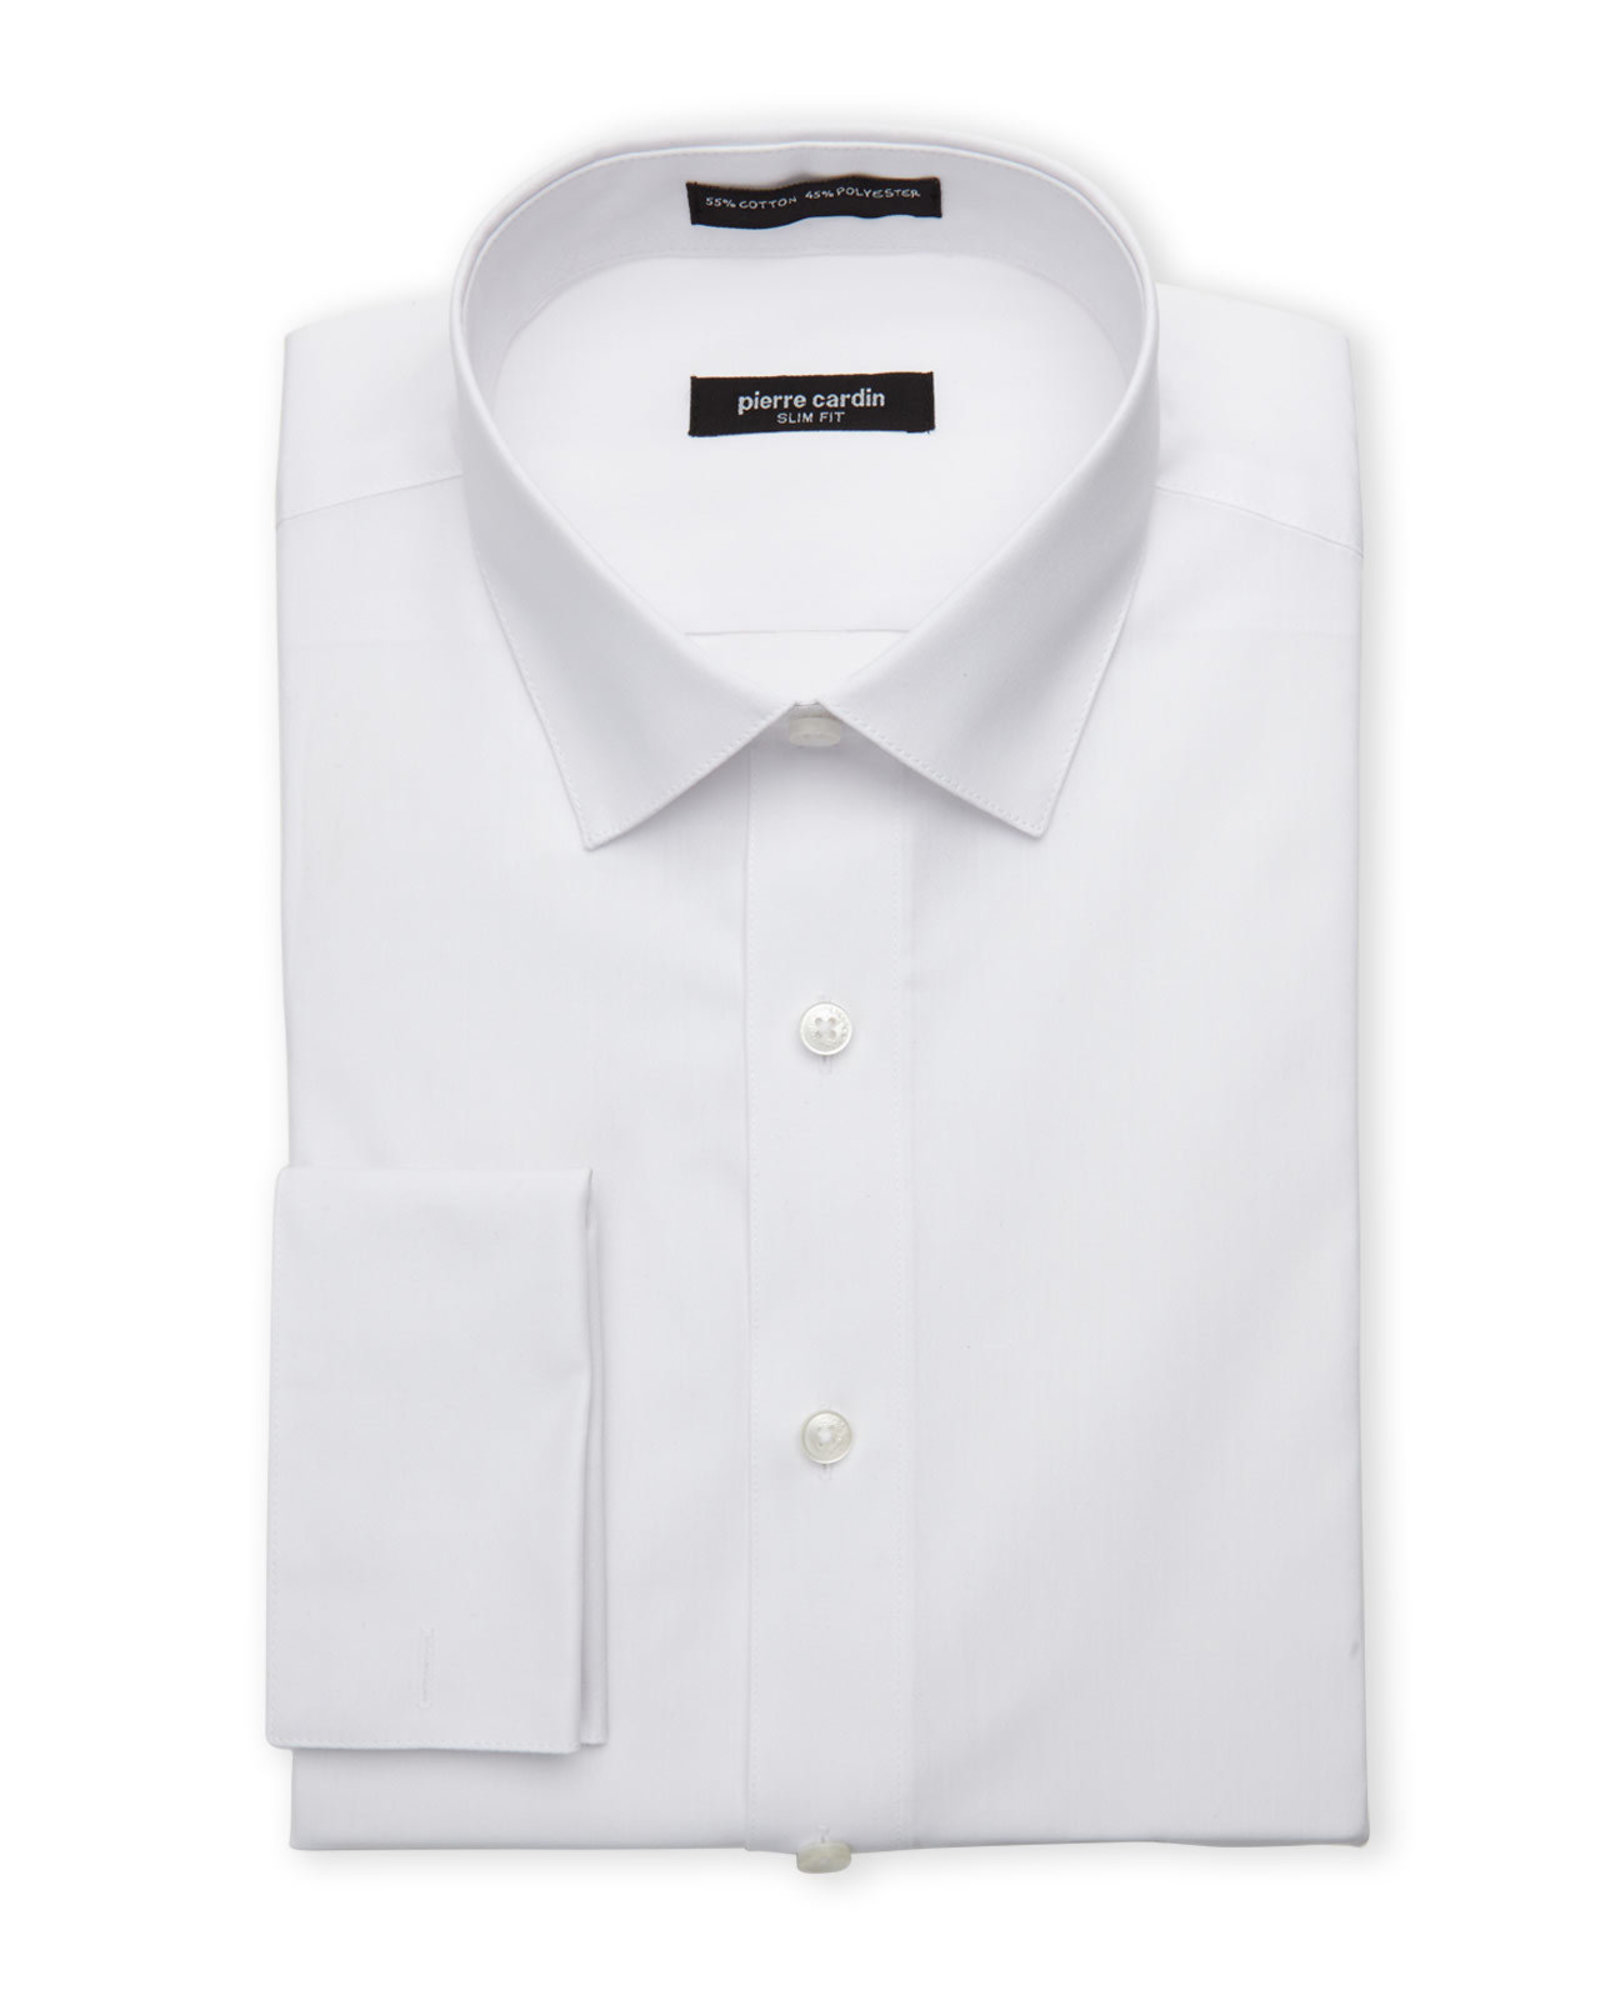 Pierre cardin white slim fit french cuff dress shirt in for French cuff slim fit dress shirt